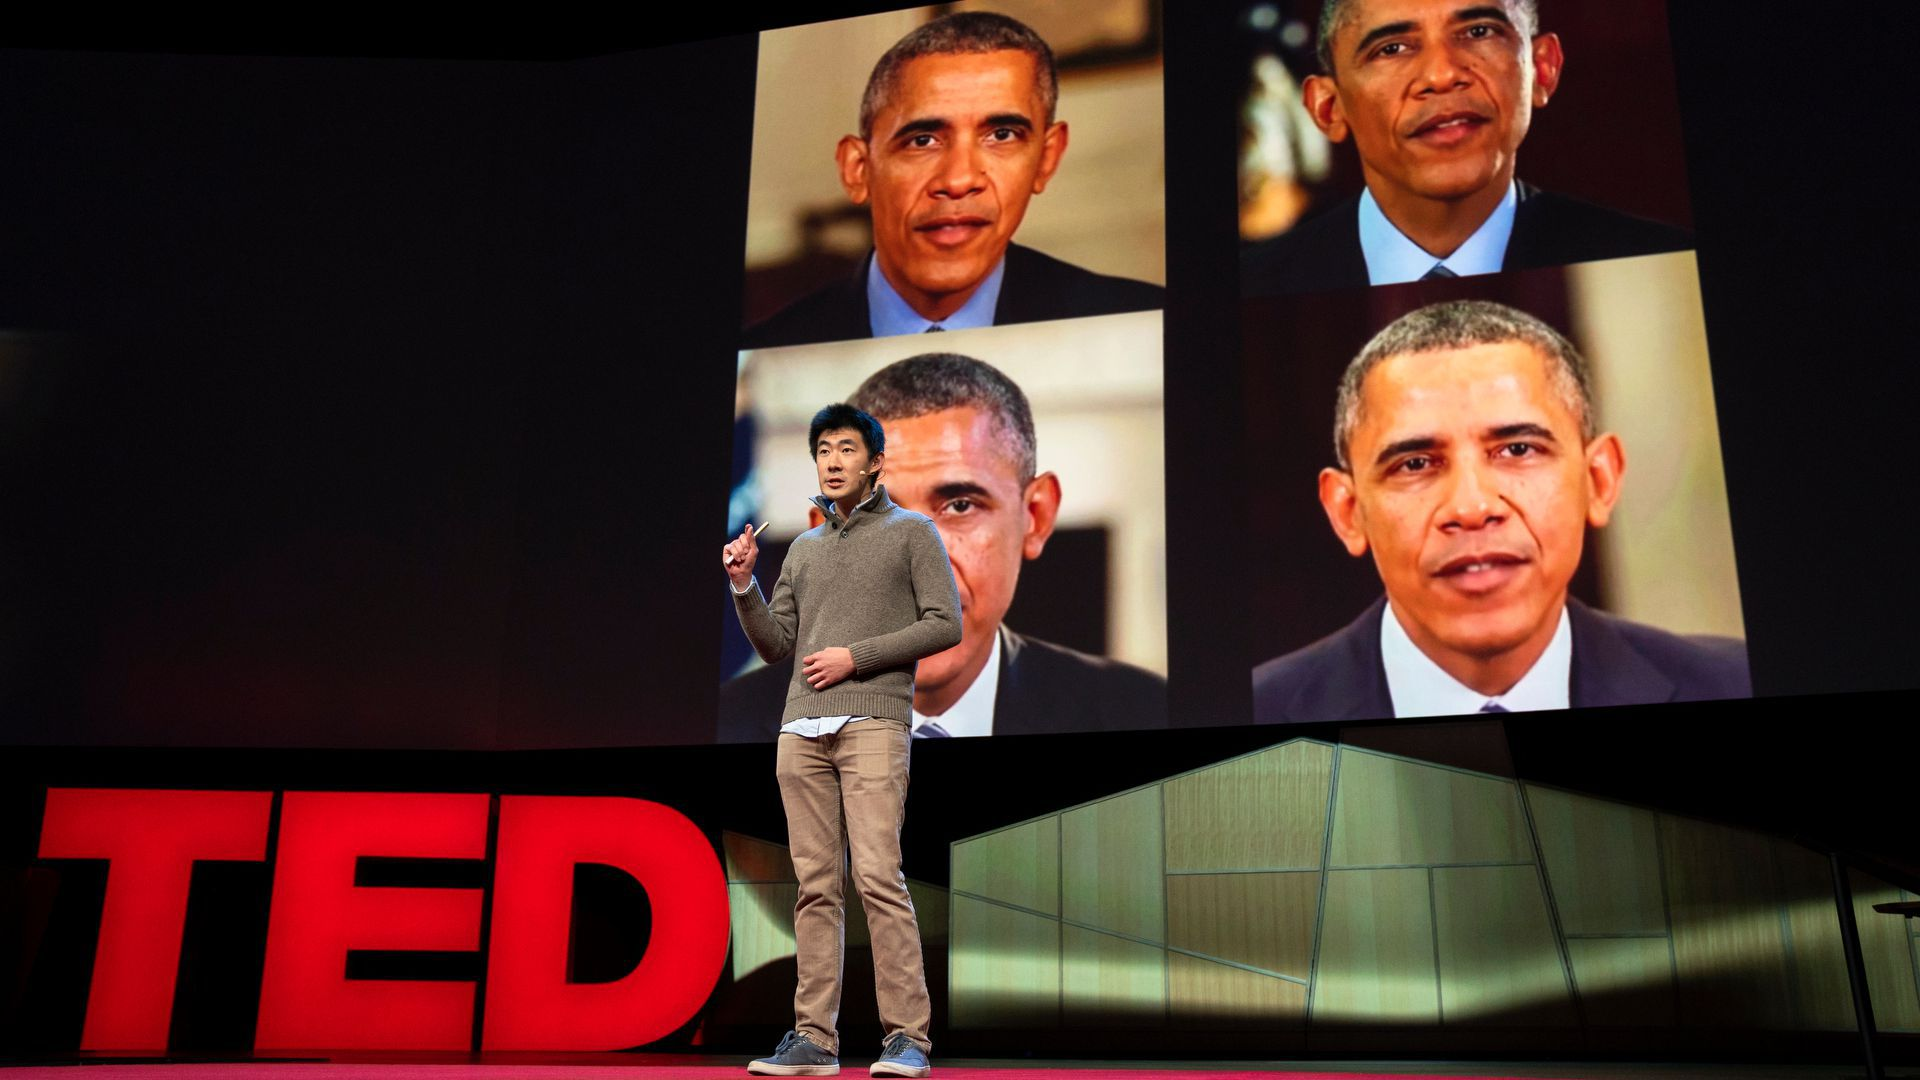 Supasorn Suwajanakorn speaks on stage at TED2018 with photos of Barack Obama on the screen behind him